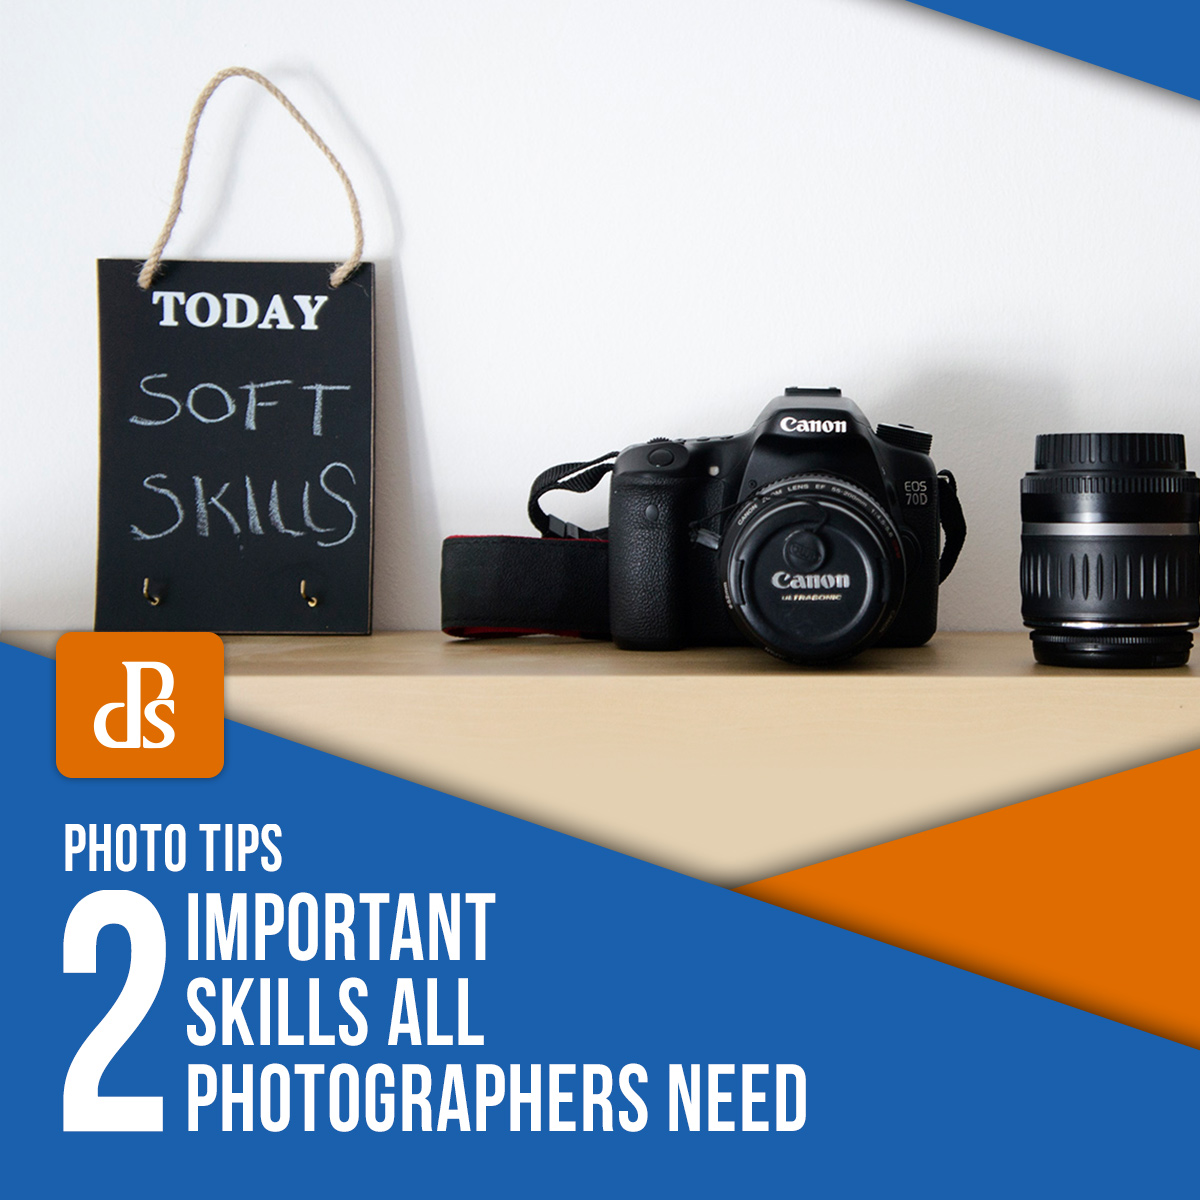 https://i0.wp.com/digital-photography-school.com/wp-content/uploads/2020/03/dps-important-skills-all-photographers-need.jpg?ssl=1